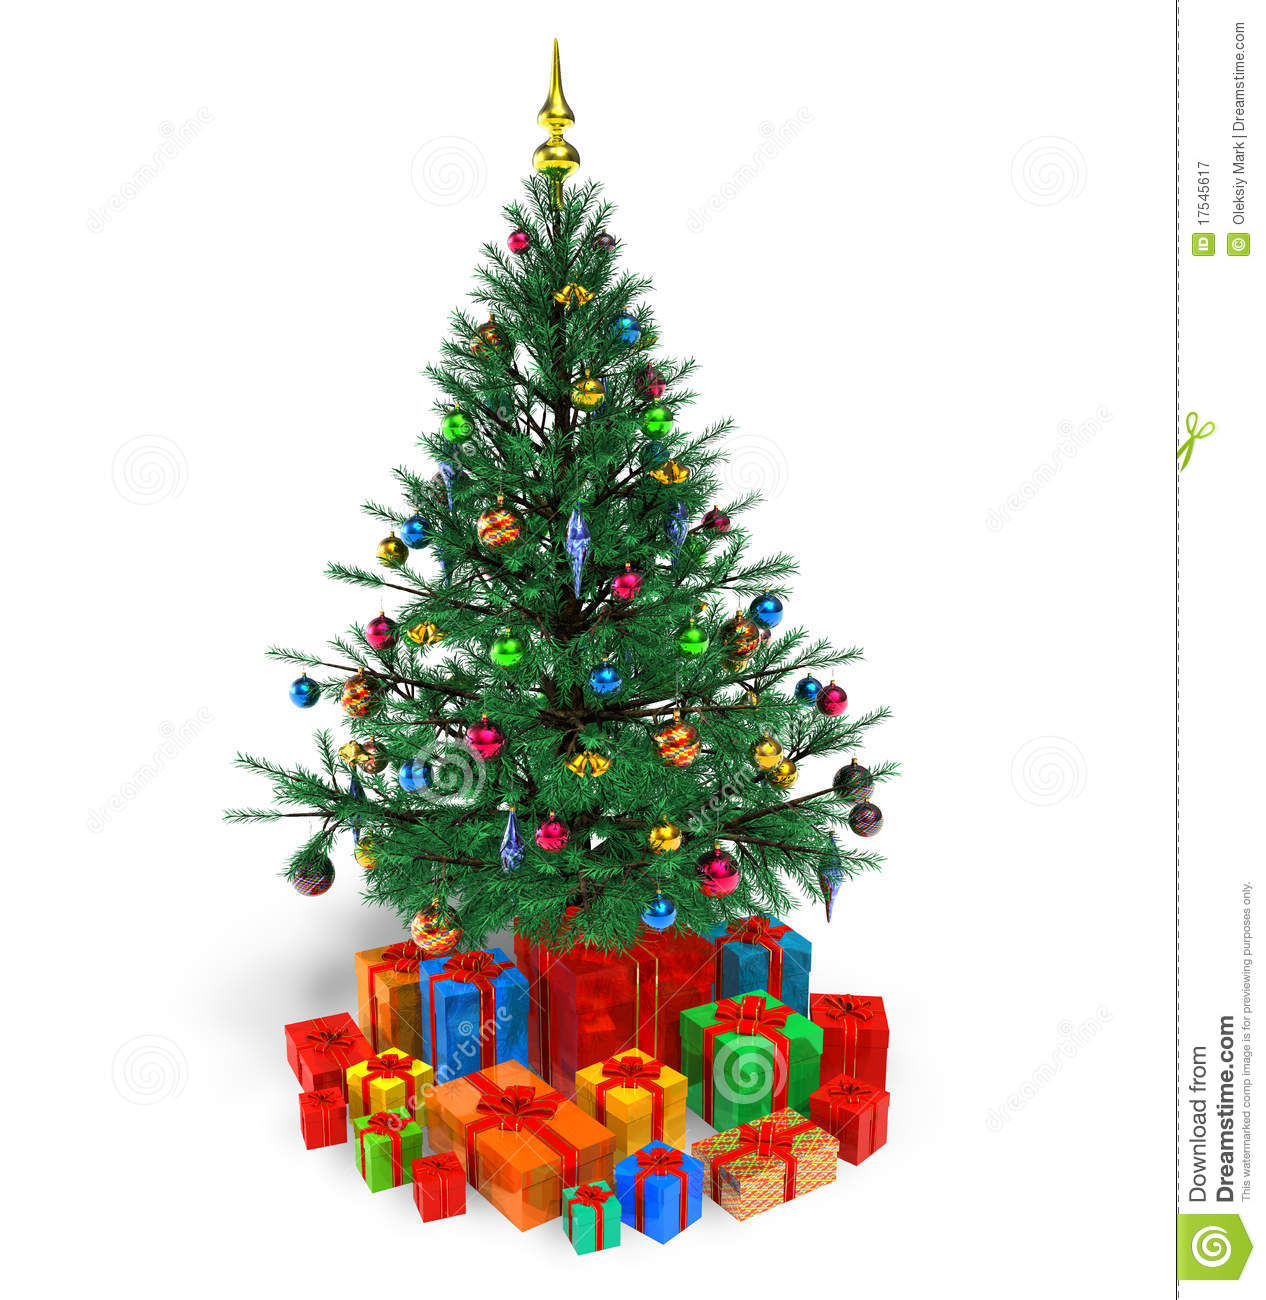 Decorated Christmas Tree Images : Decorated christmas tree with gifts stock illustration